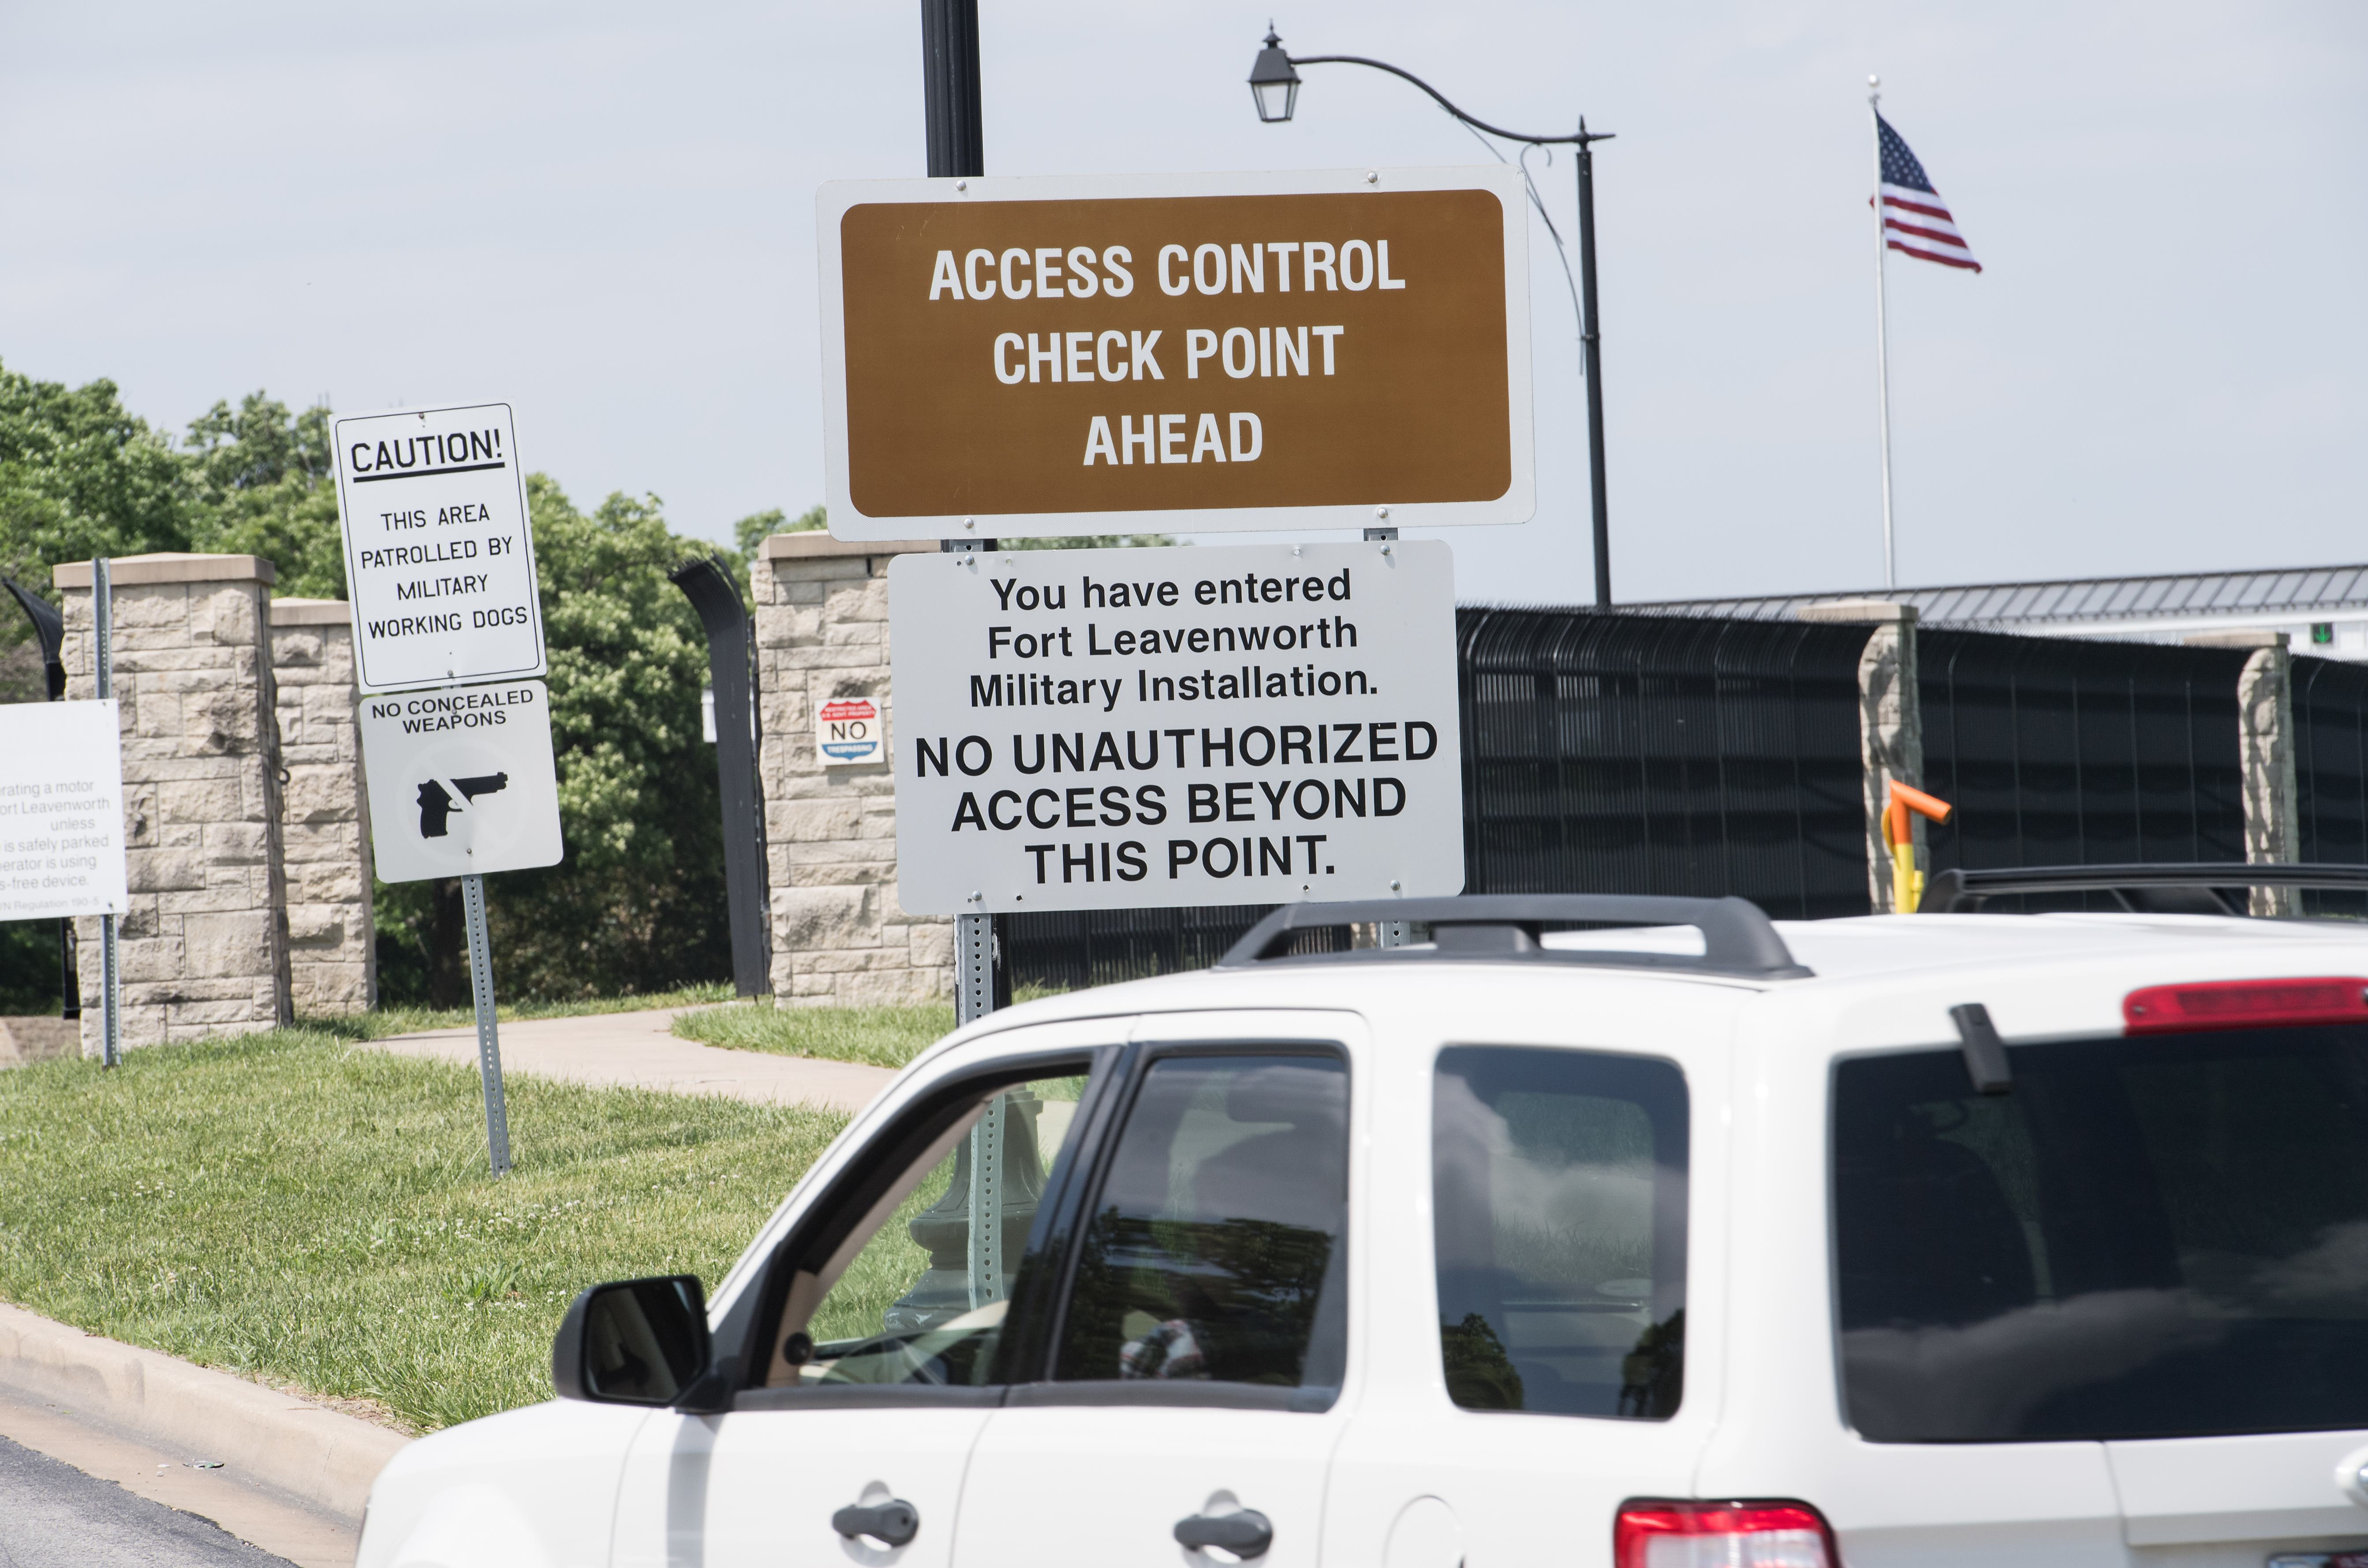 A car drives past a sign at the entrance to US Army facility Fort Leavenworth in Leavenworth, Kansas, on May 16, 2017. After seven years behind bars, US Army Private Chelsea Manning will walk out of the security gates of the Fort Leavenworth military prison on May 17, finally able to complete her transition as a free, openly transgender woman. (Photo credit should read NICHOLAS KAMM/AFP/Getty Images)